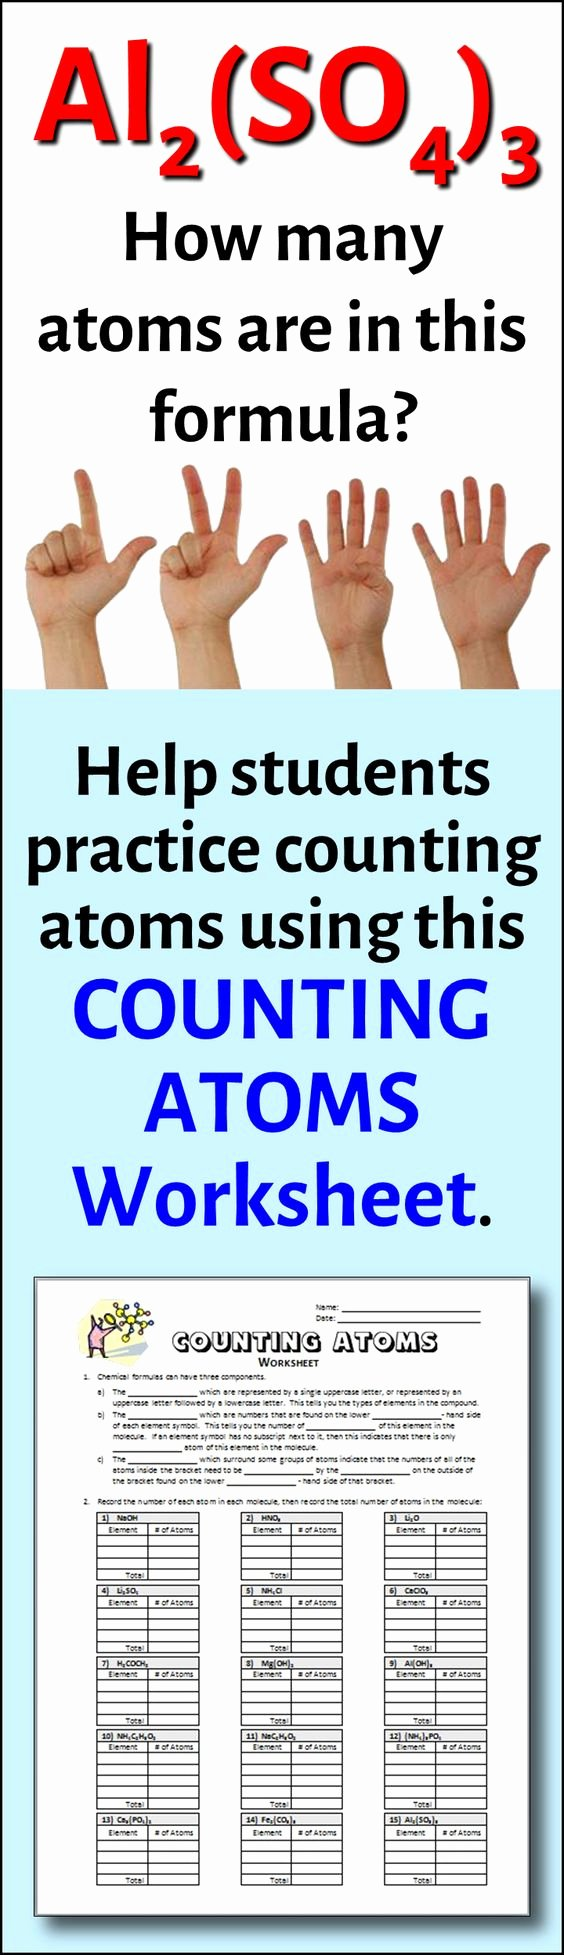 Counting atoms Worksheet Answer Key Luxury Counting atoms Worksheet Editable